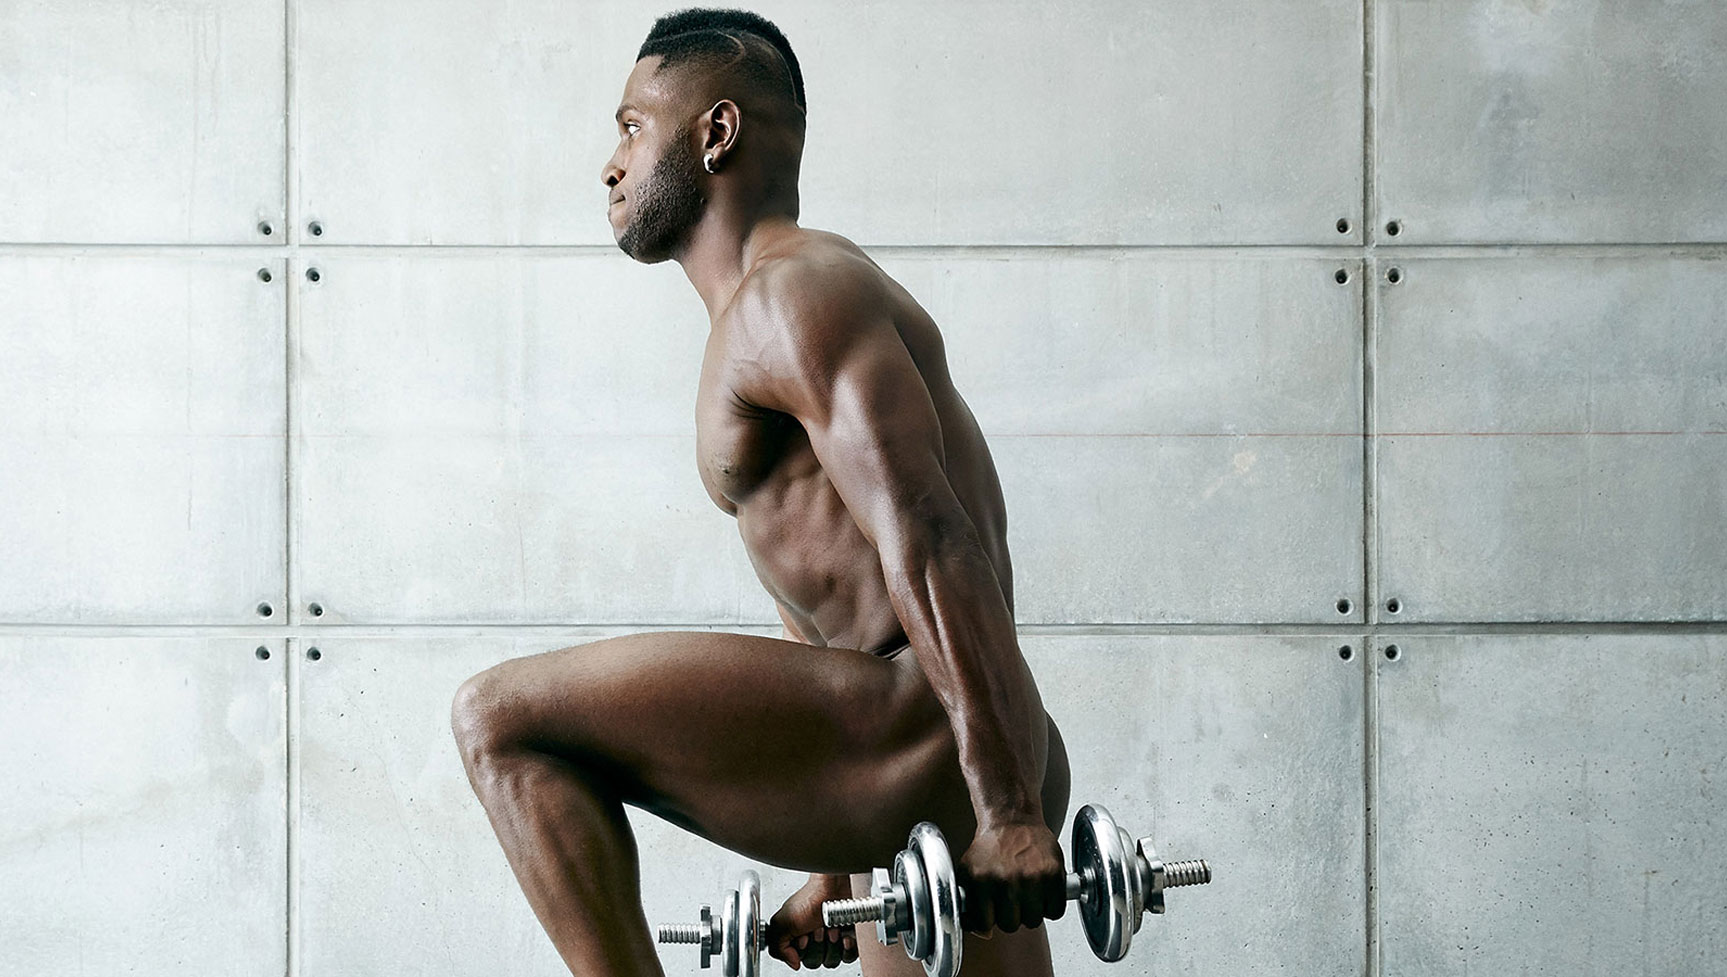 ESPN Magazine The Body Issue 2016 - Antonio Brown / Антонио Браун - Культ тела журнала ESPN